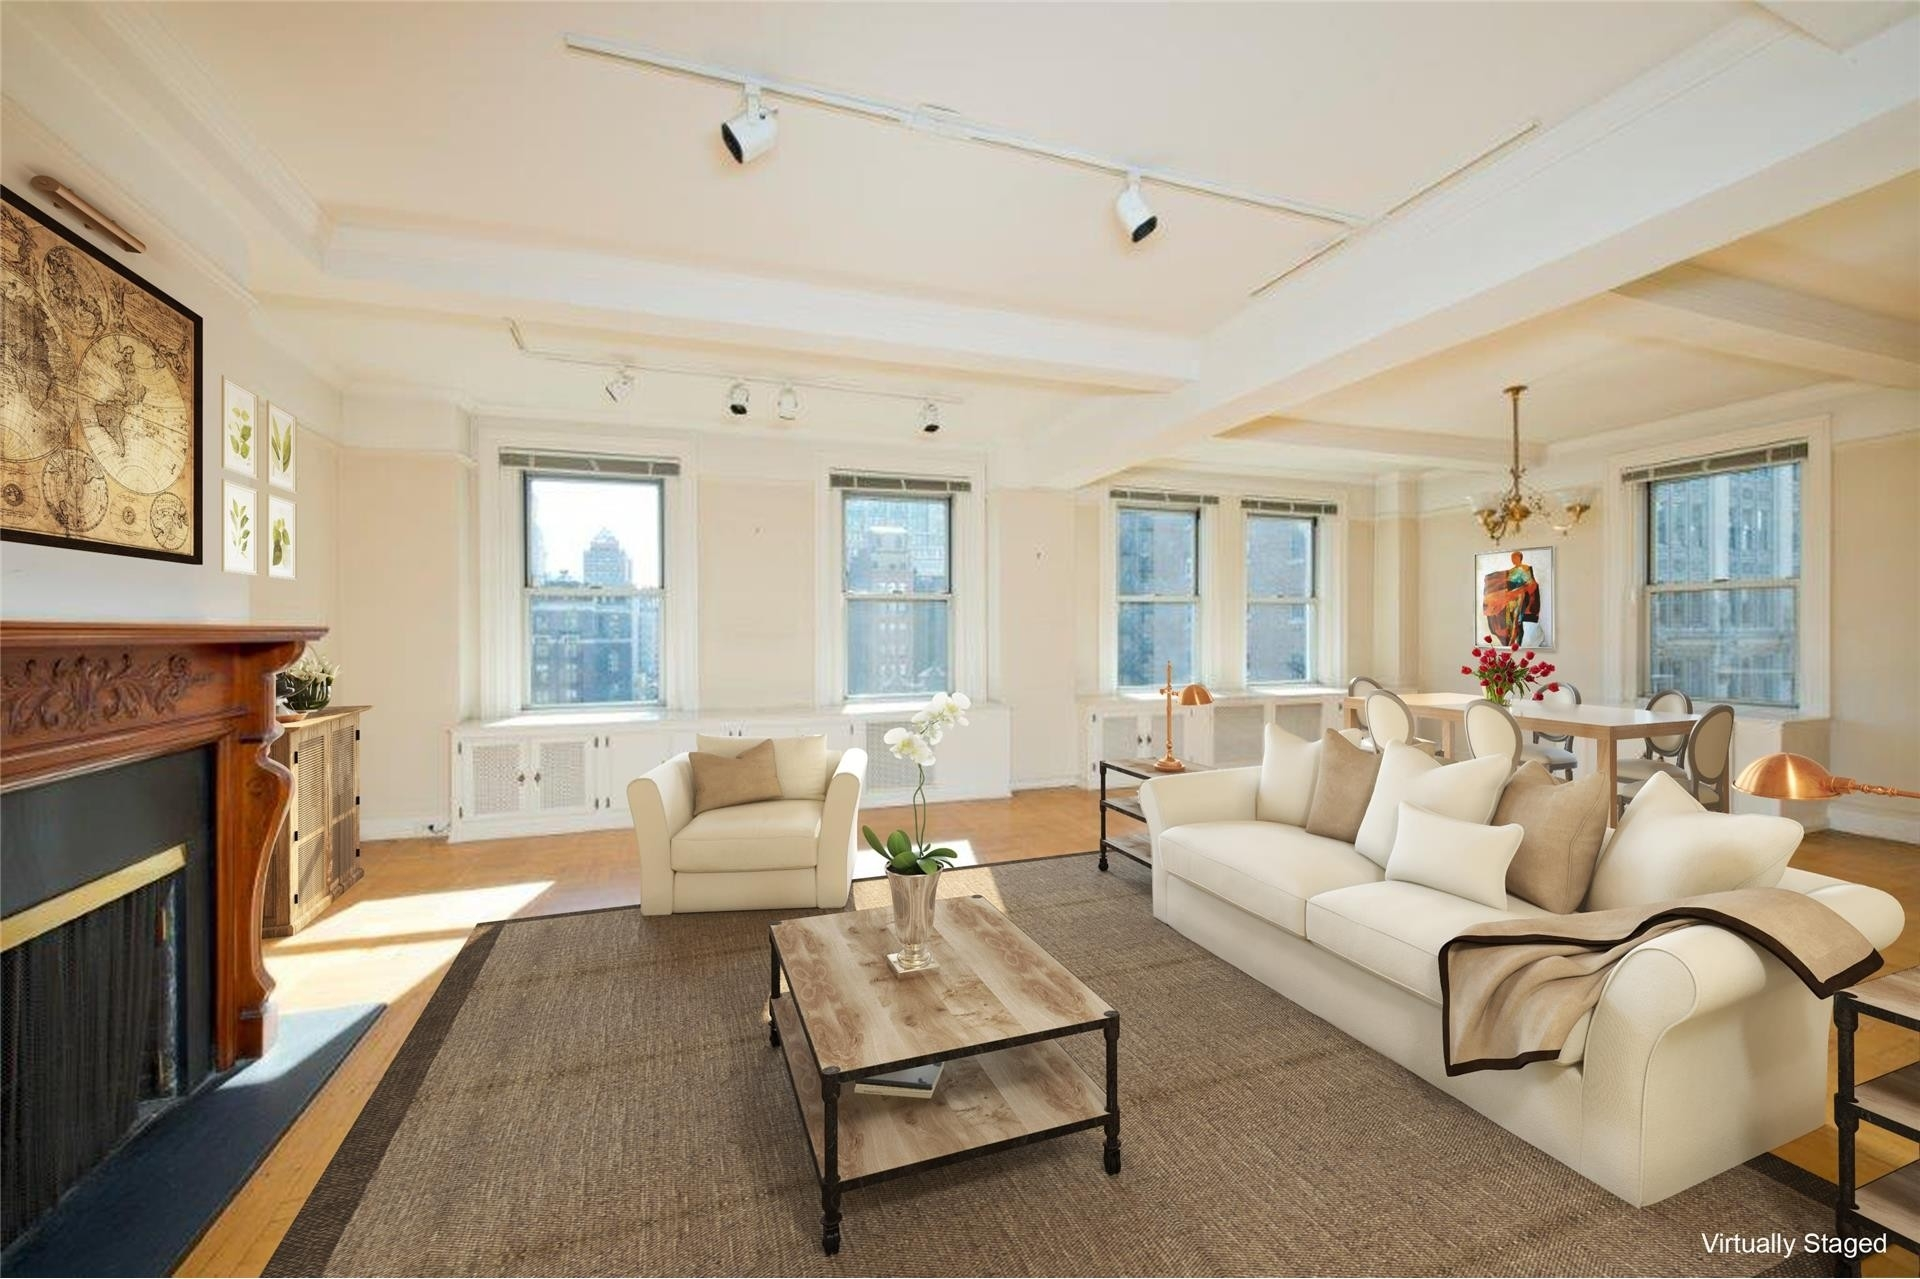 1. Gramercy Park Resid. Corp. здание в 60 Gramercy Park North, Gramercy Park, New York, NY